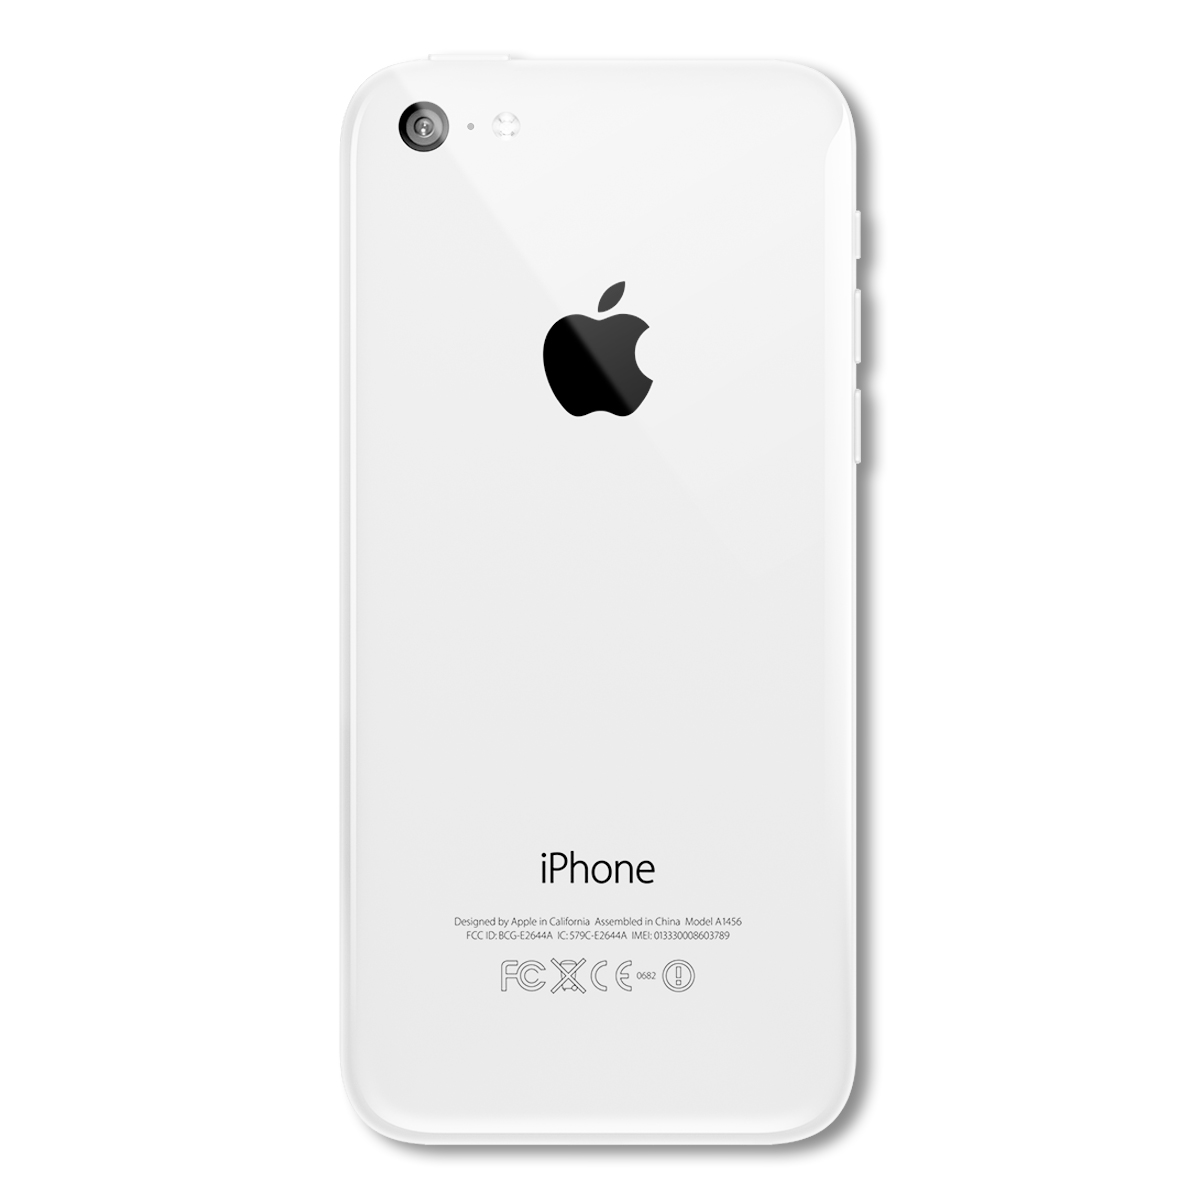 apple iphone 5c 32gb gsm unlocked smartphone a1532 at t t. Black Bedroom Furniture Sets. Home Design Ideas